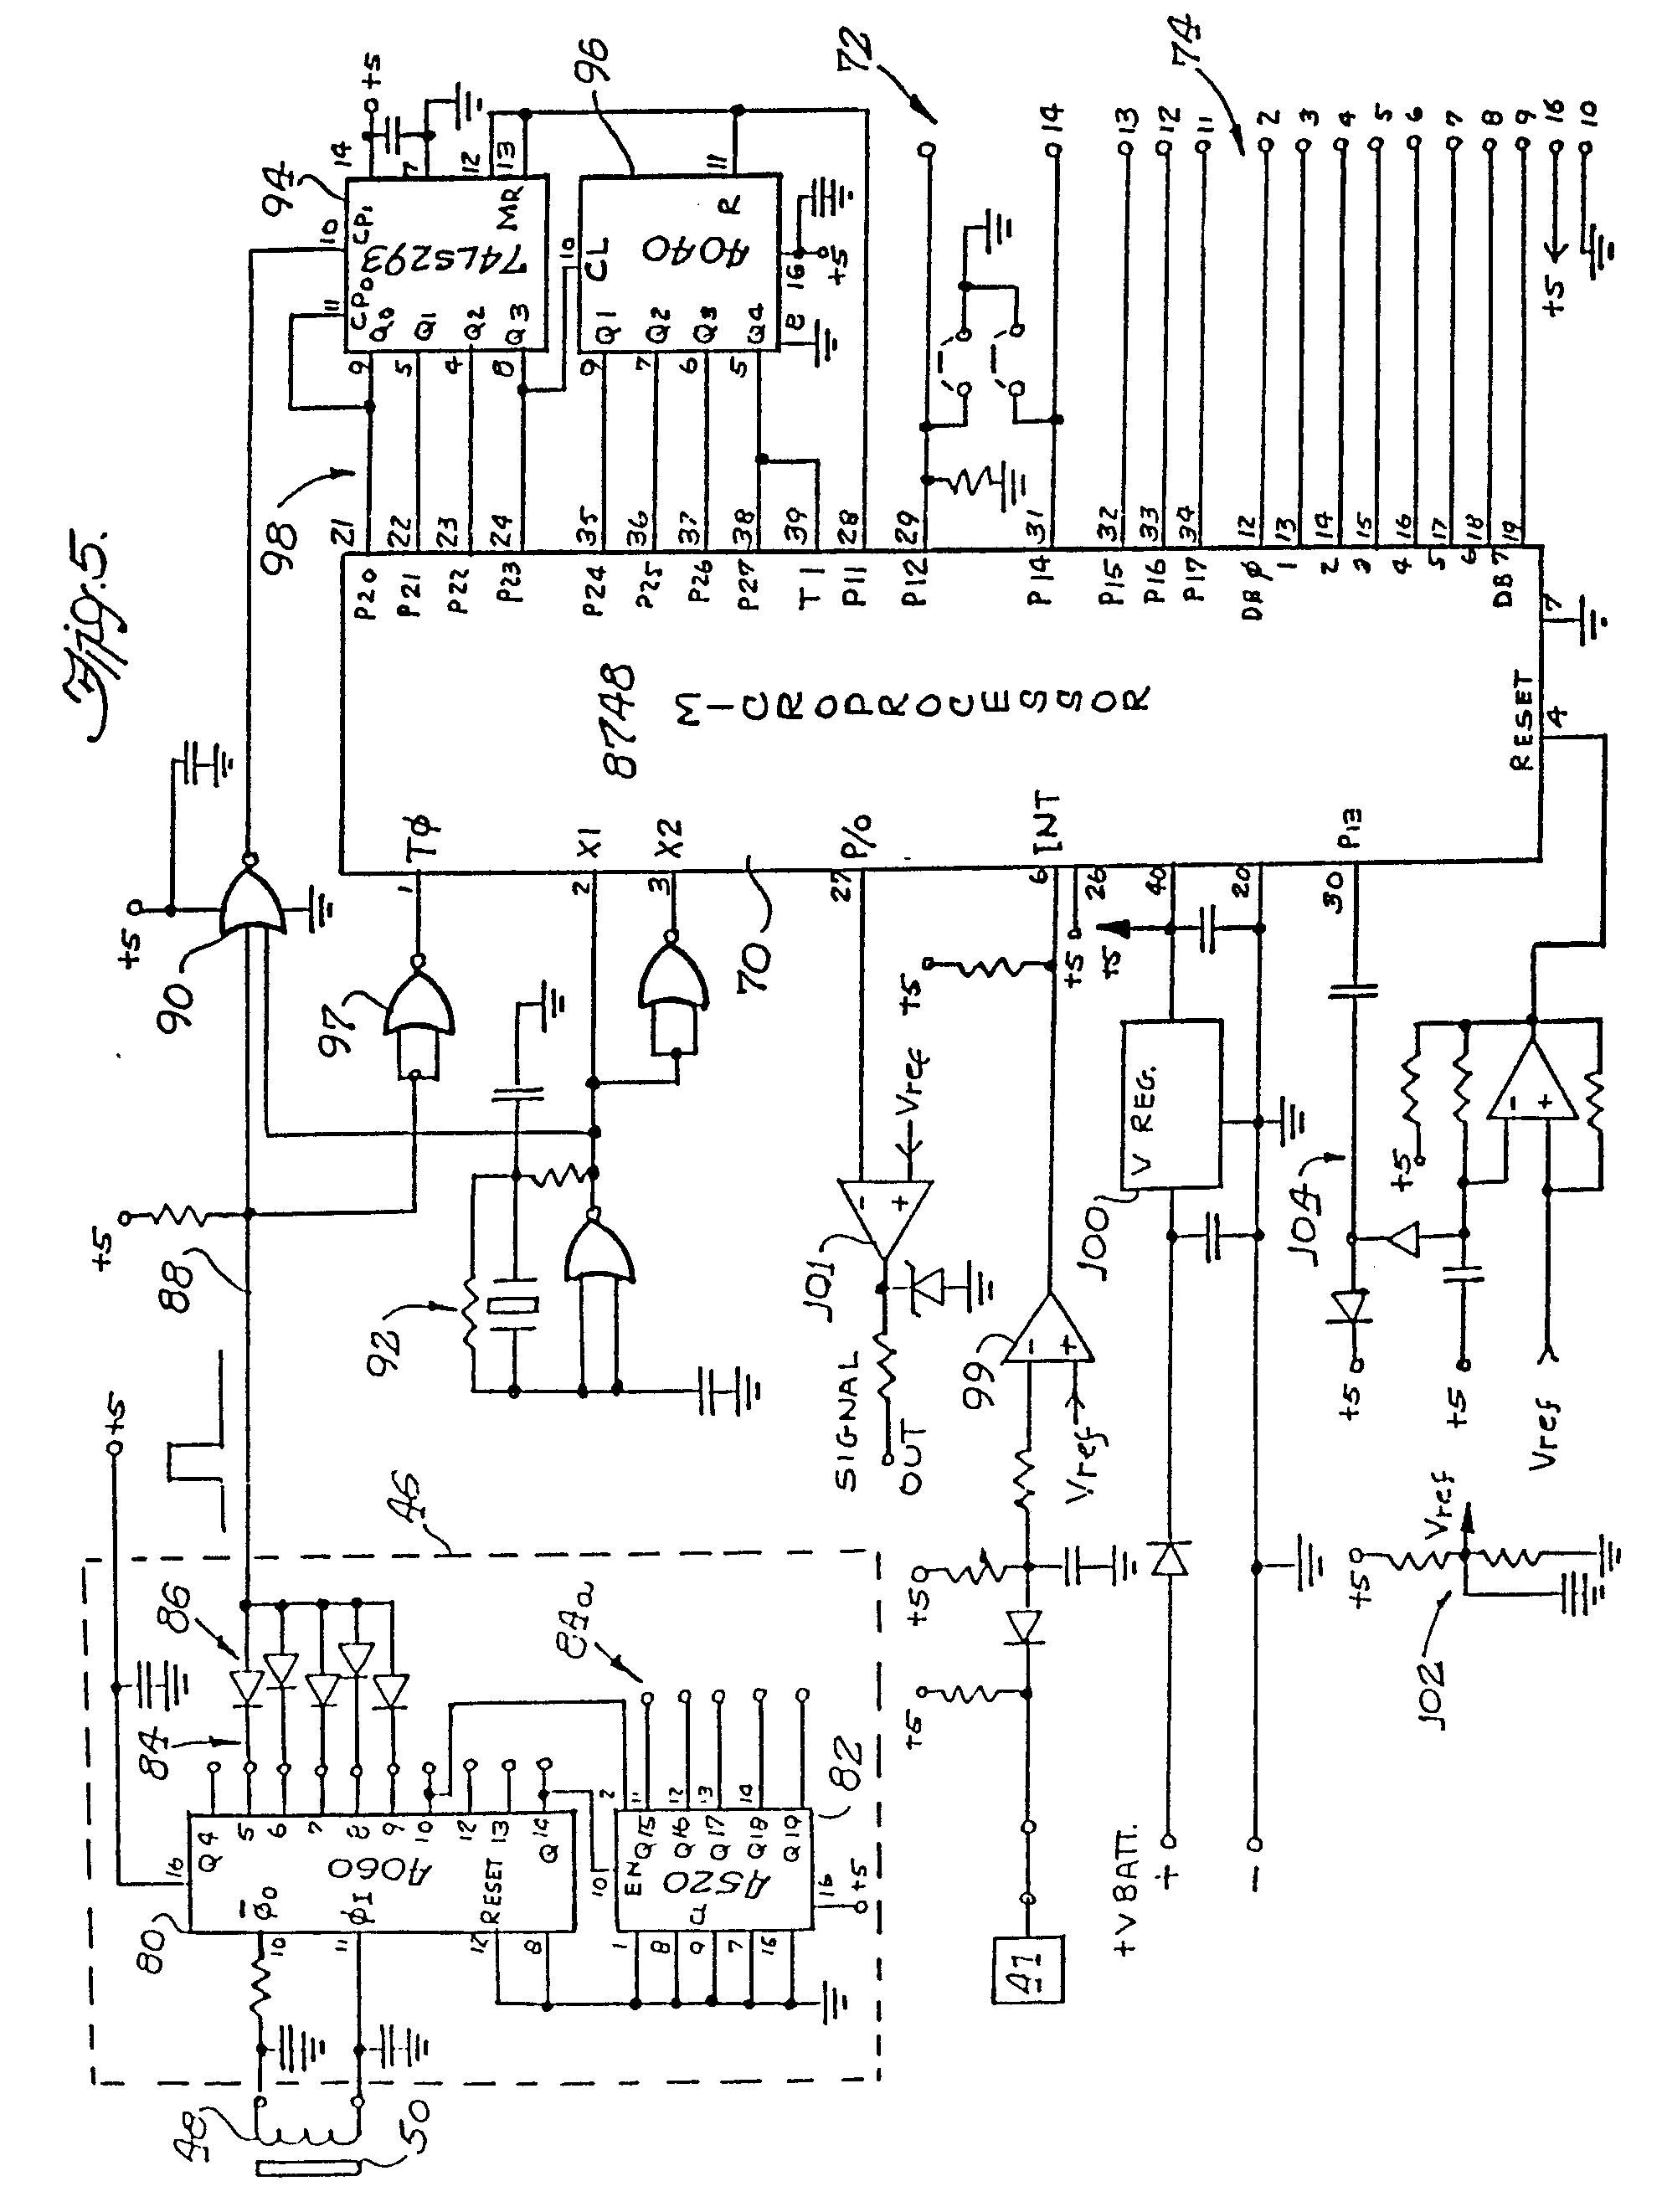 Ford 9n Electrical Diagram Ford Wiring Diagram Images